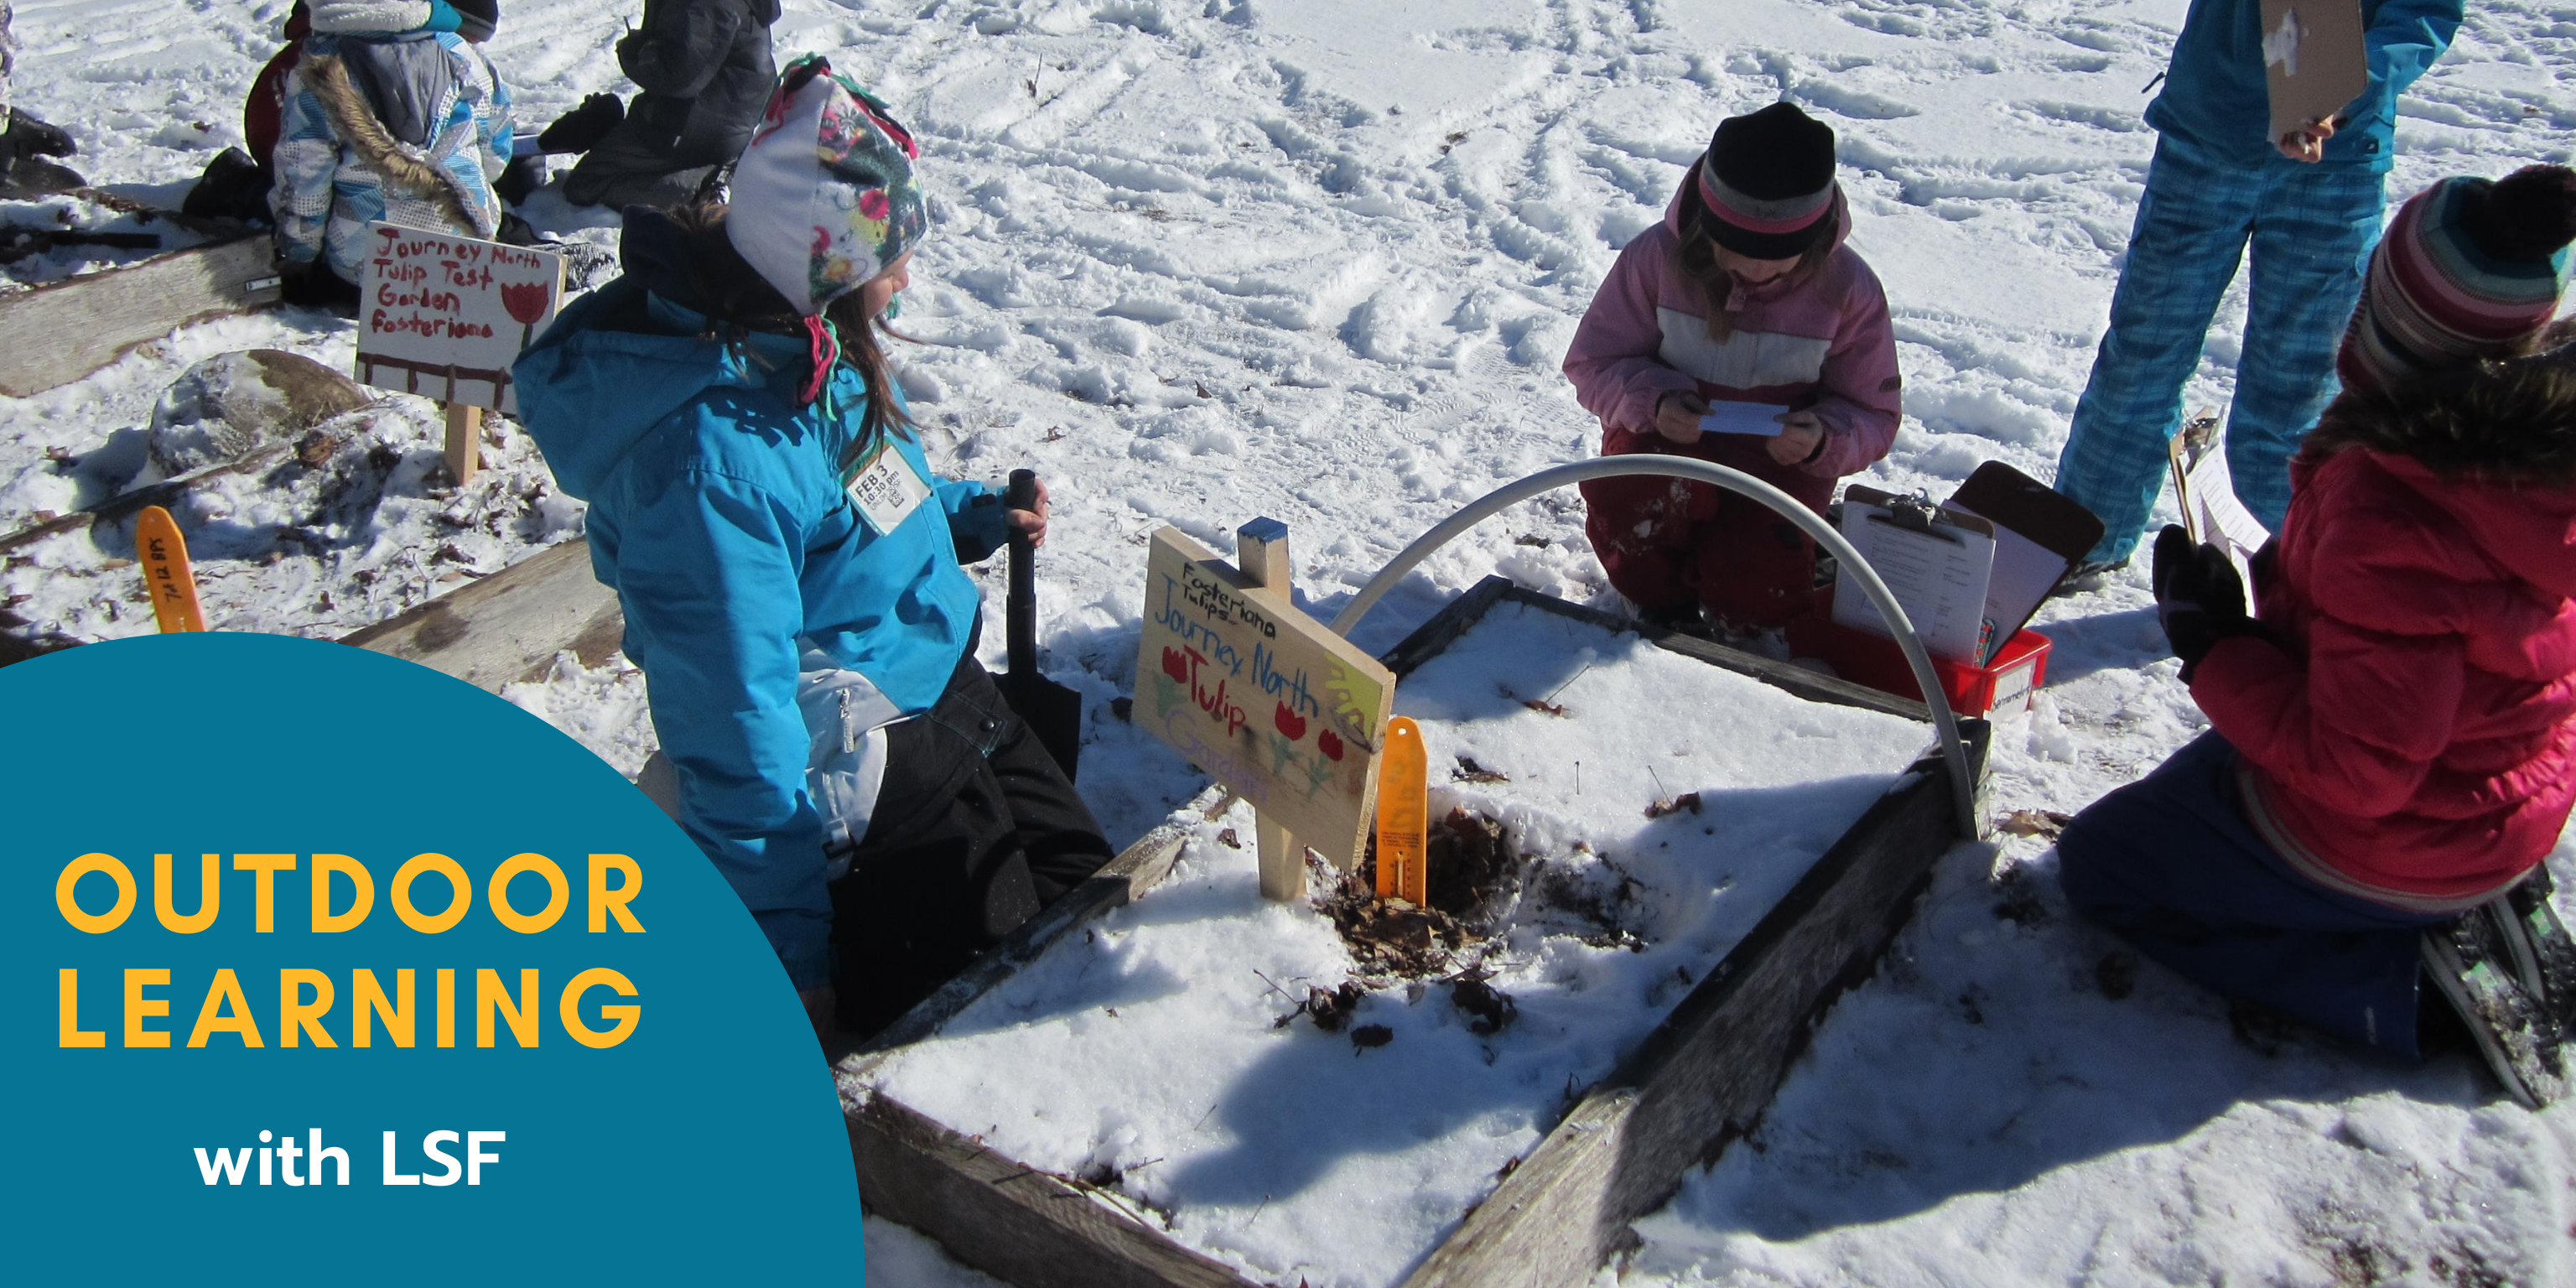 kids learning outdoors in winter